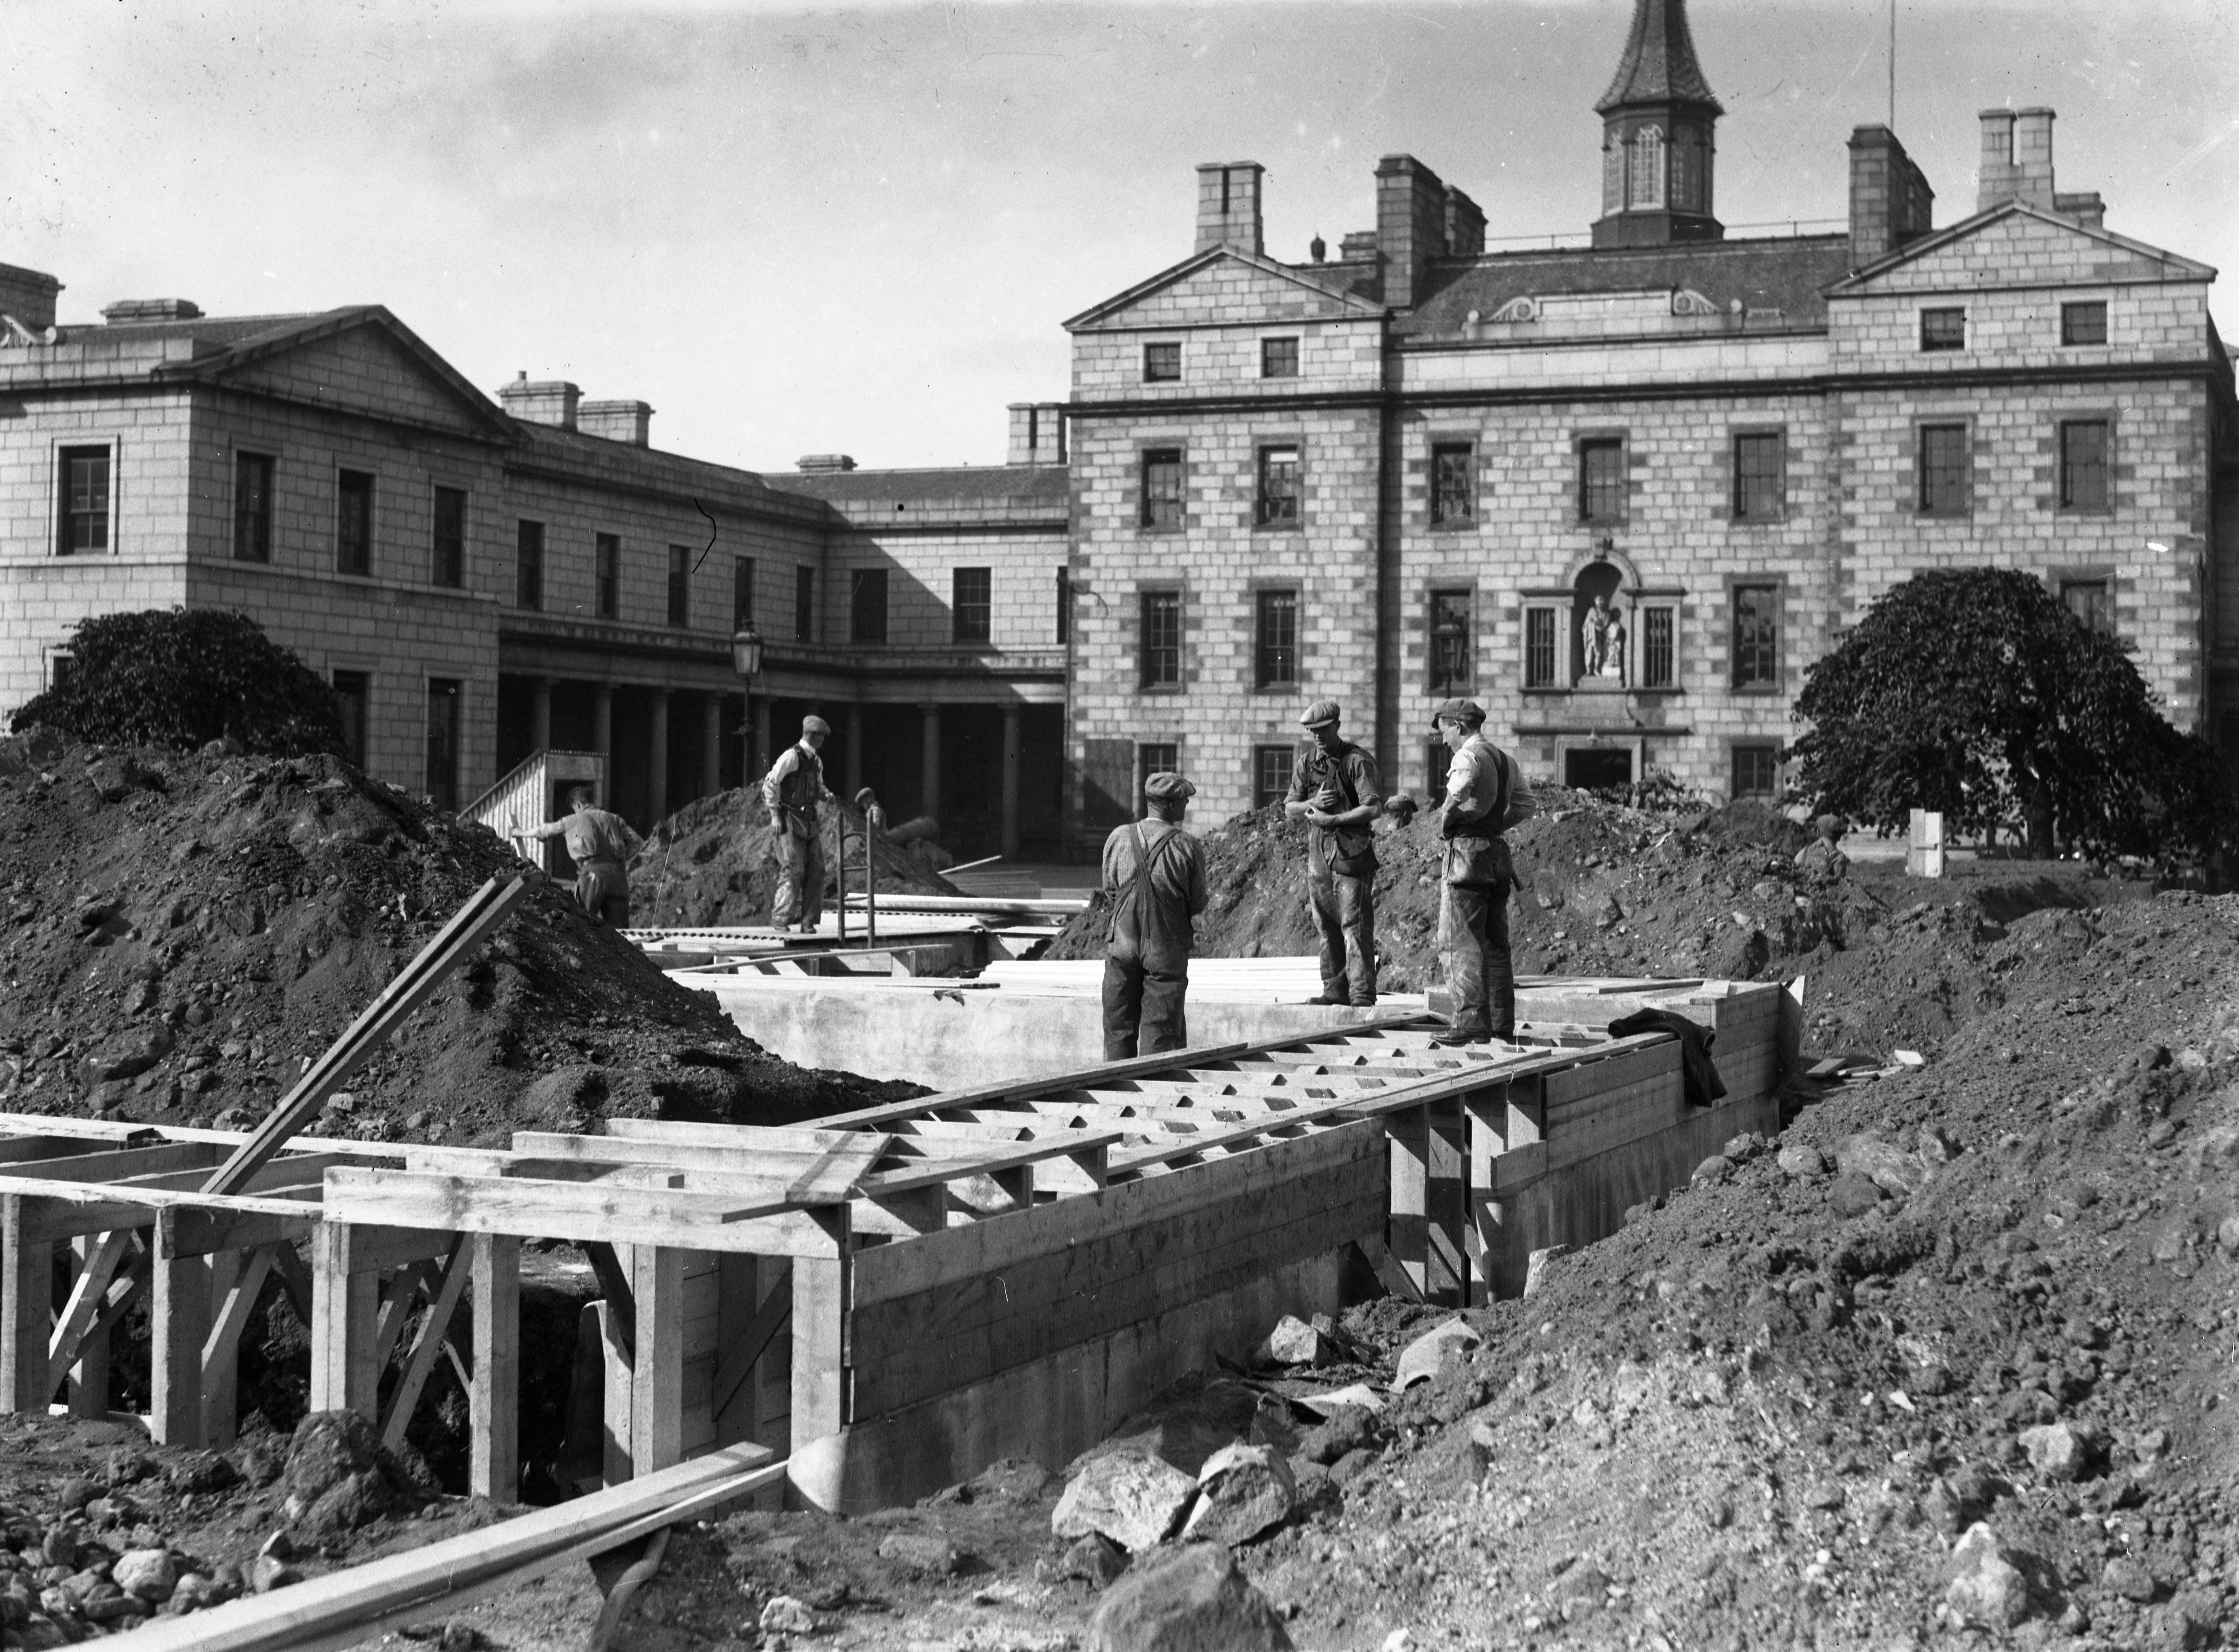 Making air raid shelters at Robert Gordons College. Picture was taken 26 September 1939